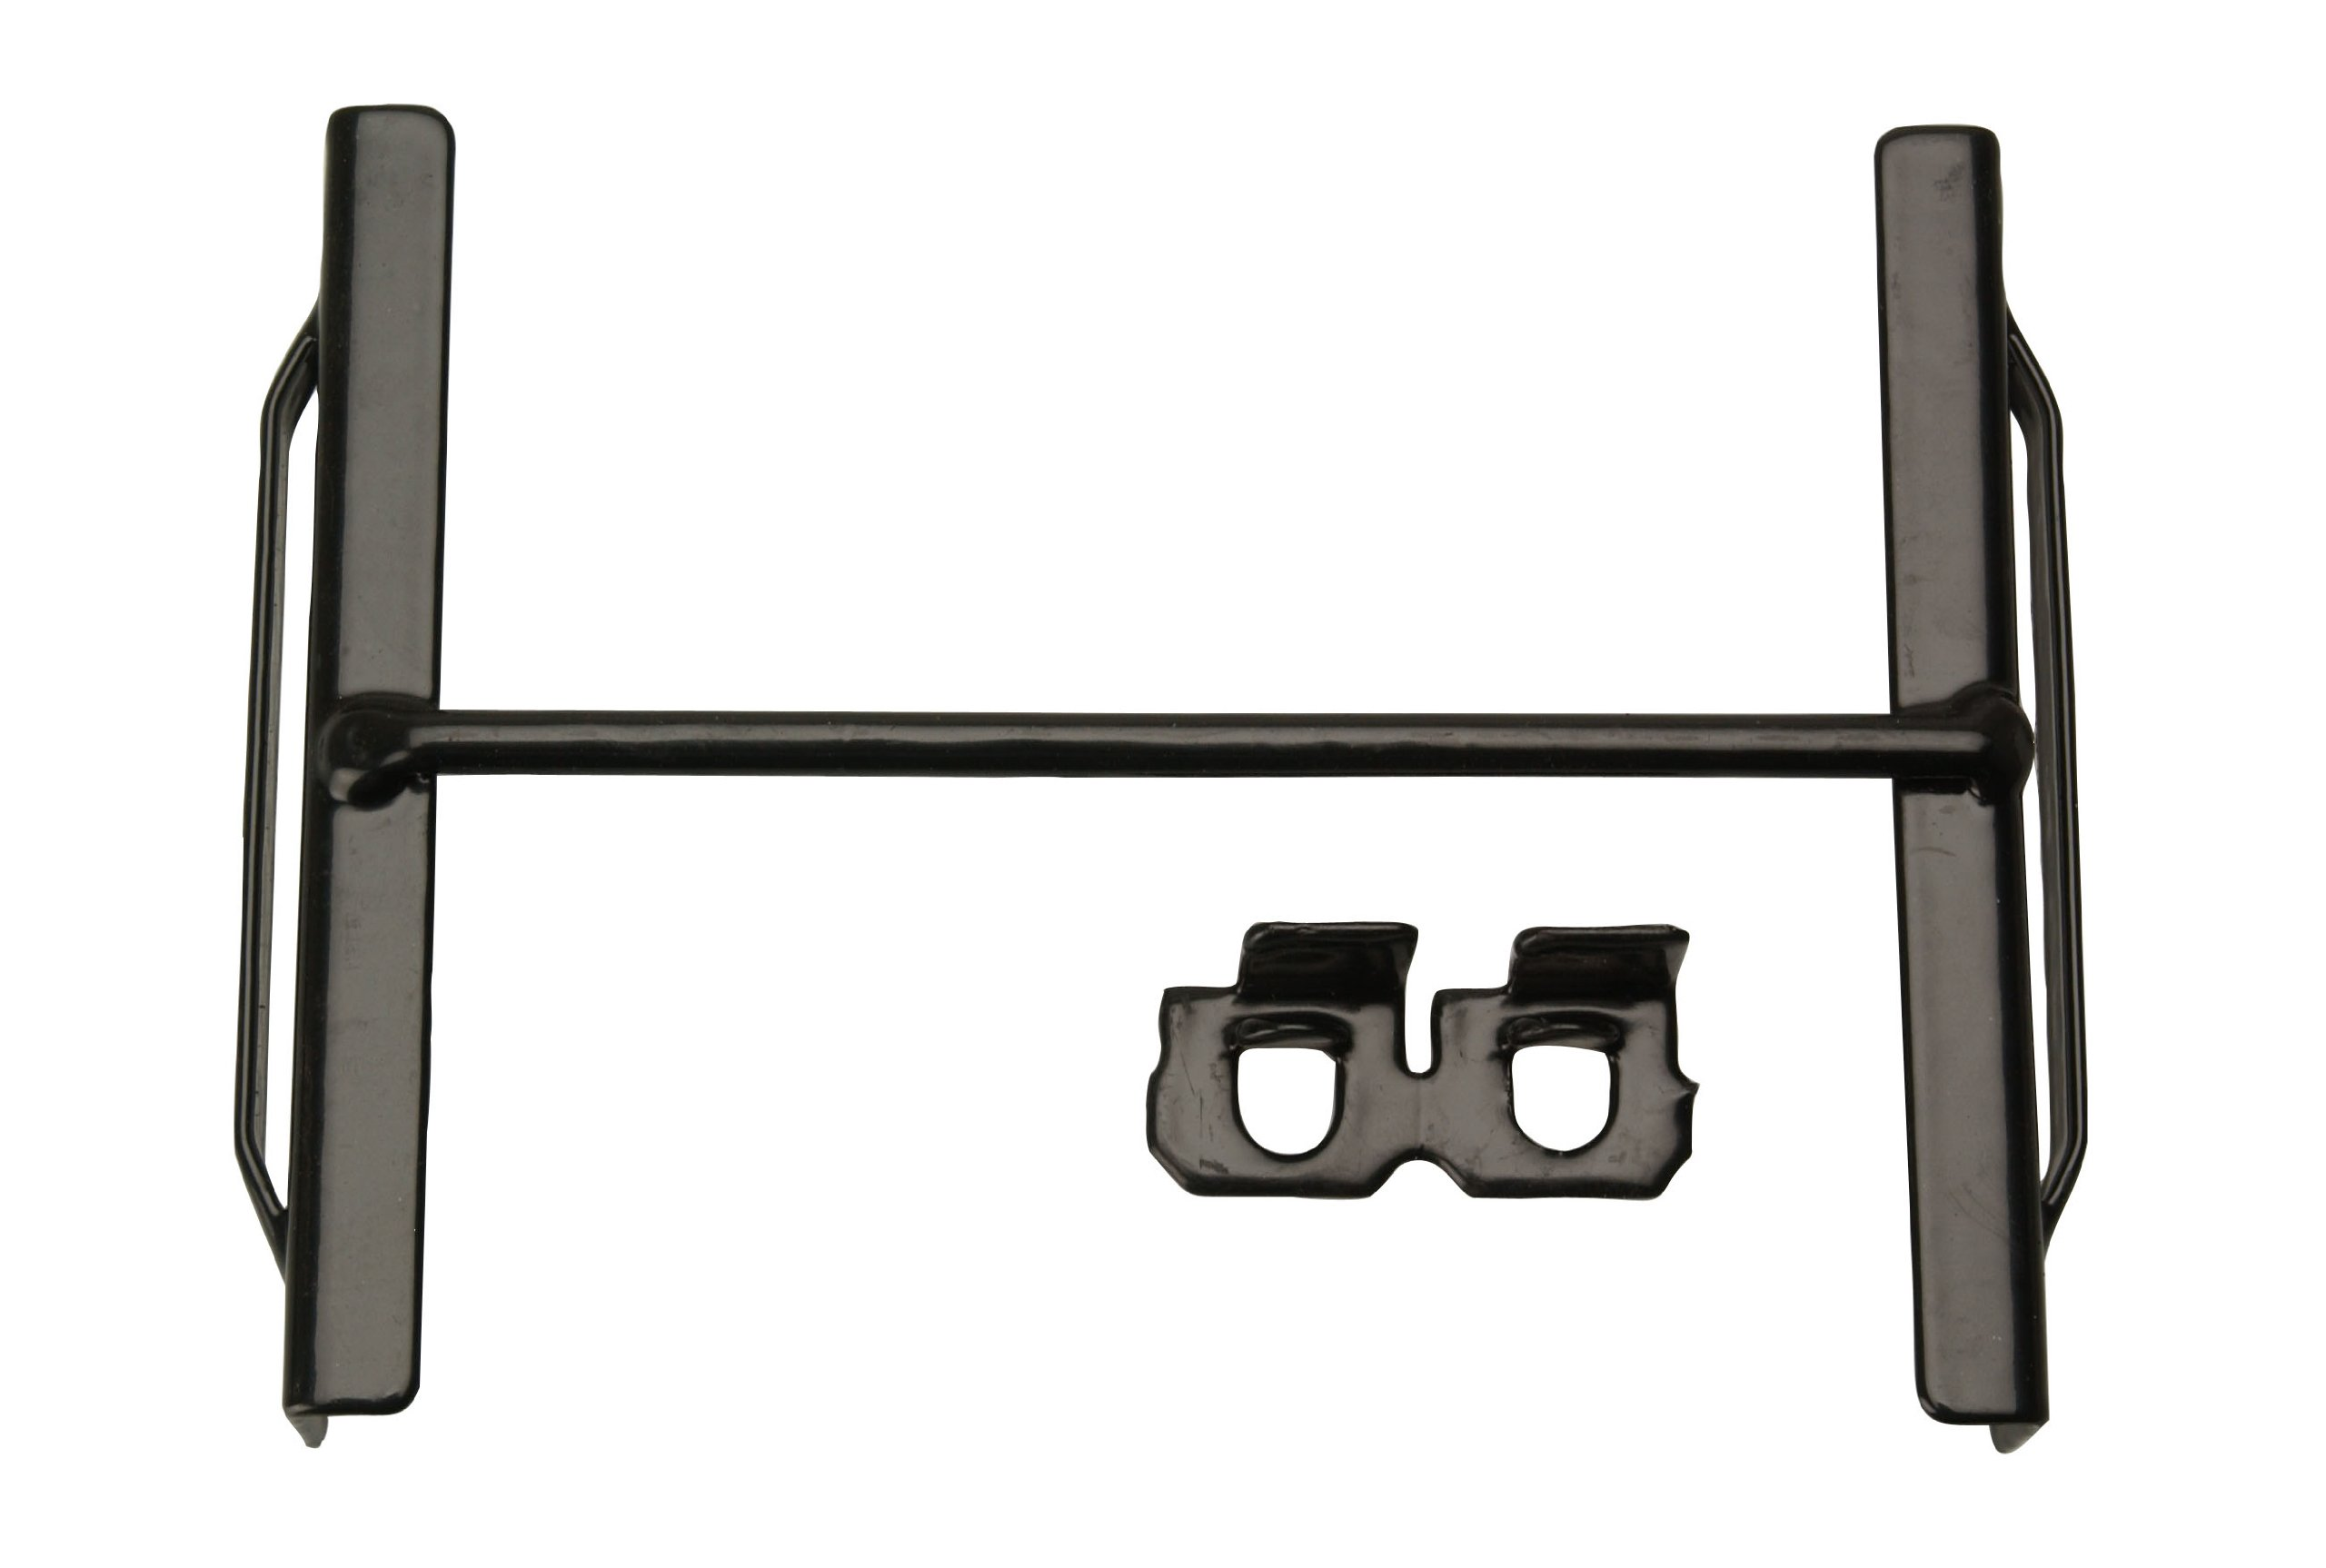 Road Power 0975 6.8-Inch Universal Cross Bar Battery hold down, Black